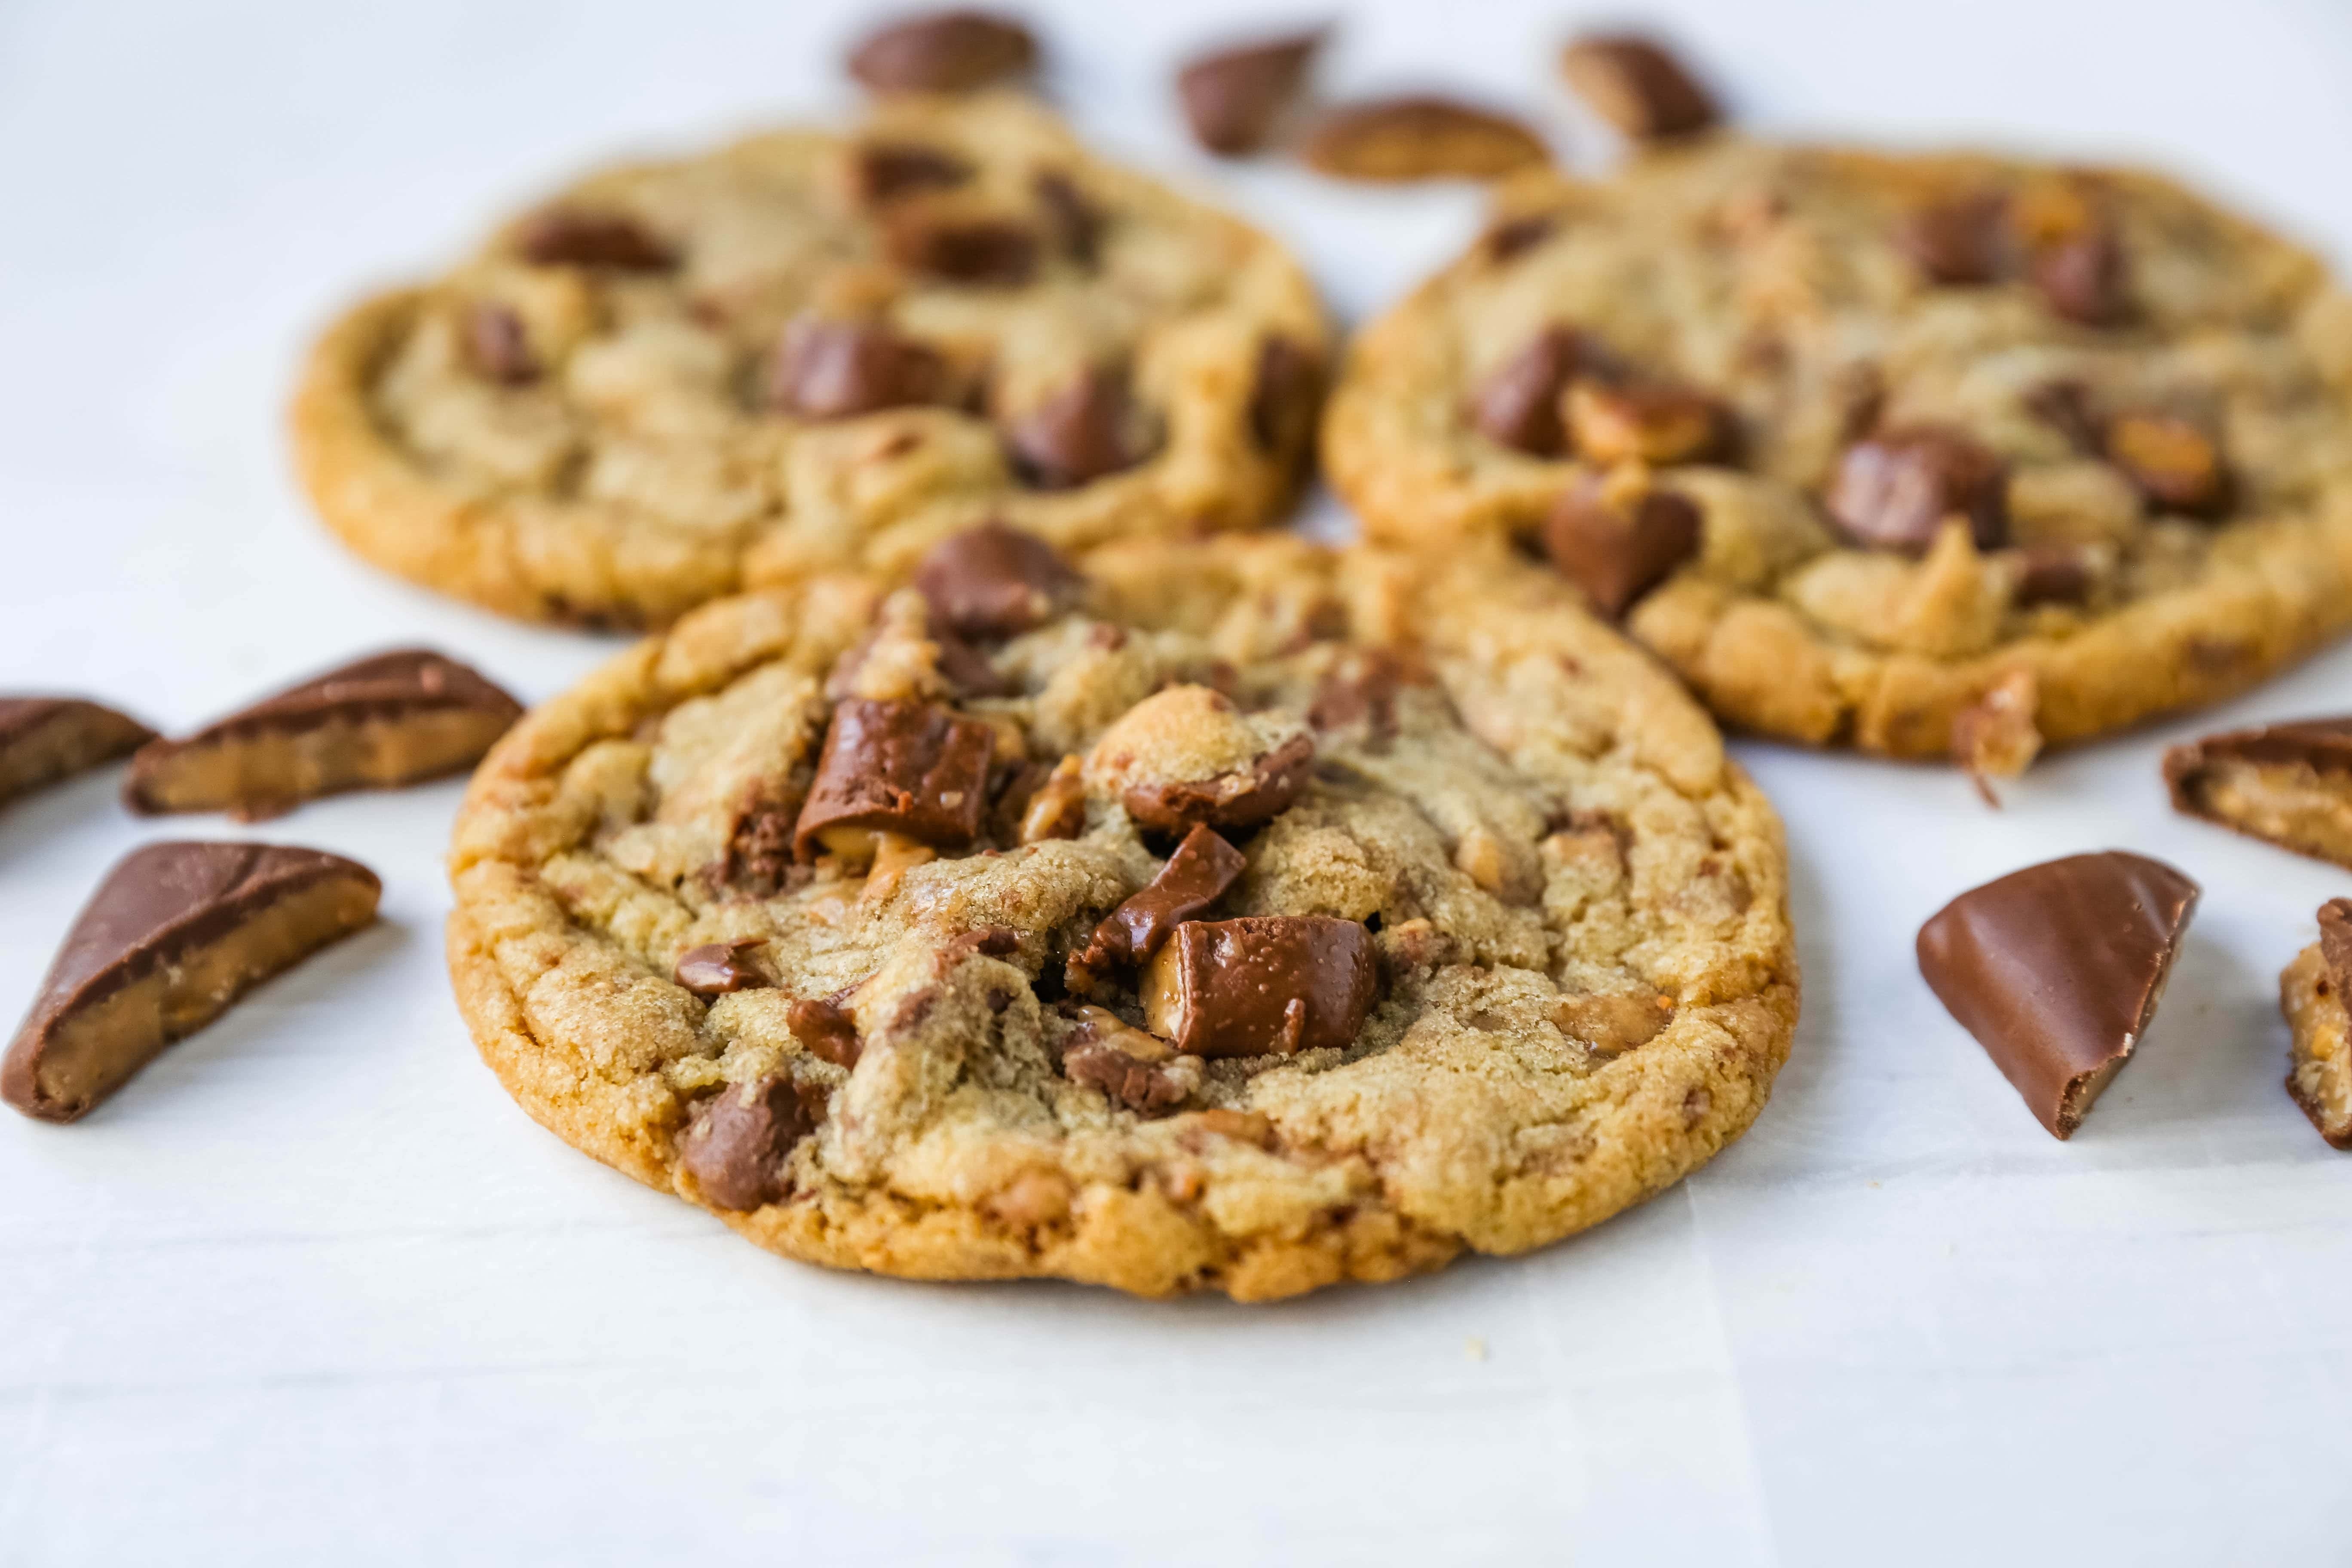 Milk Chocolate Toffee Cookies Buttery rich milk chocolate chip cookies with milk chocolate covered toffee pieces. You are going to fall in love with these browned butter milk chocolate chip toffee cookies! www.modernhoney.com #toffeecookies #milkchocolatetoffeecookies #saucepancookies